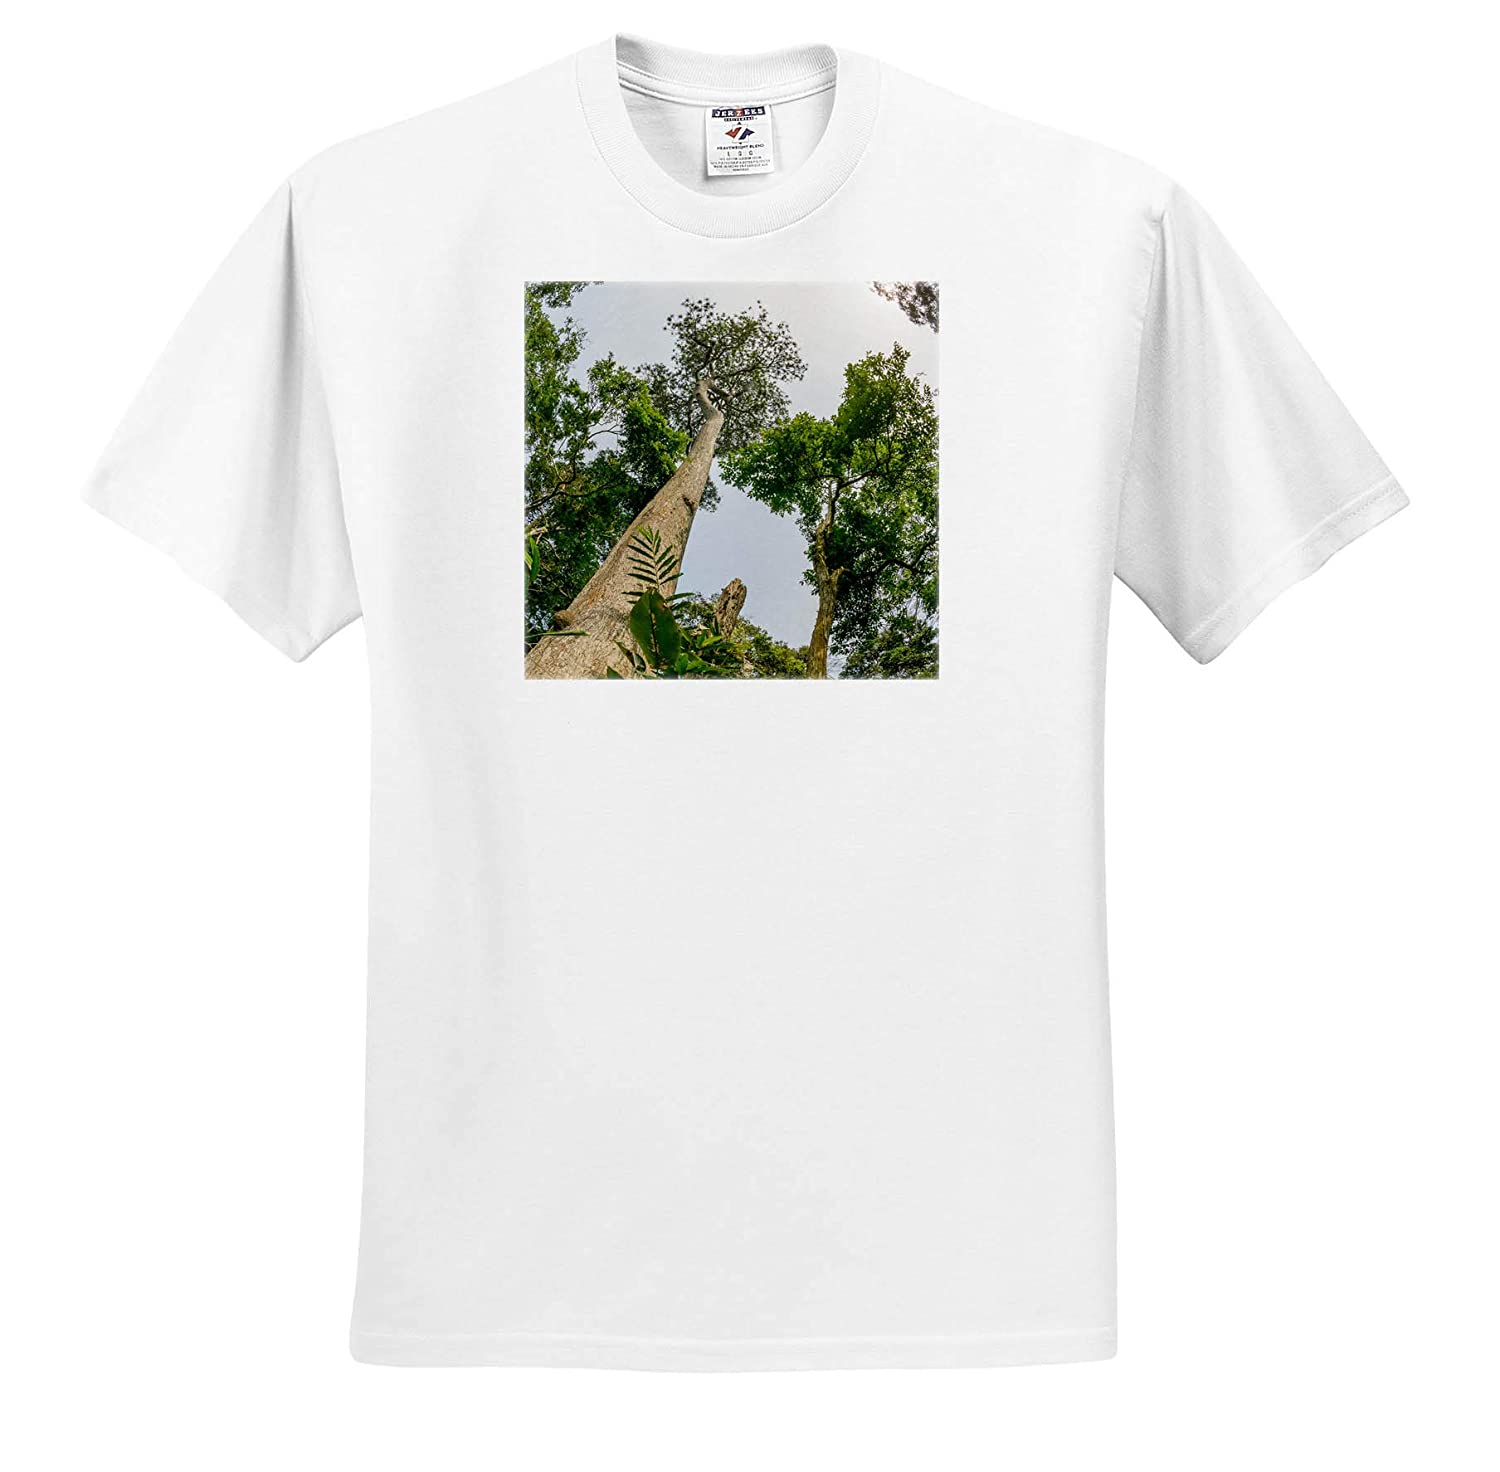 Adult T-Shirt XL Trees ts/_310396 Republic of The Congo 3dRose Danita Delimont Marantaceae Forest Looking up Tree